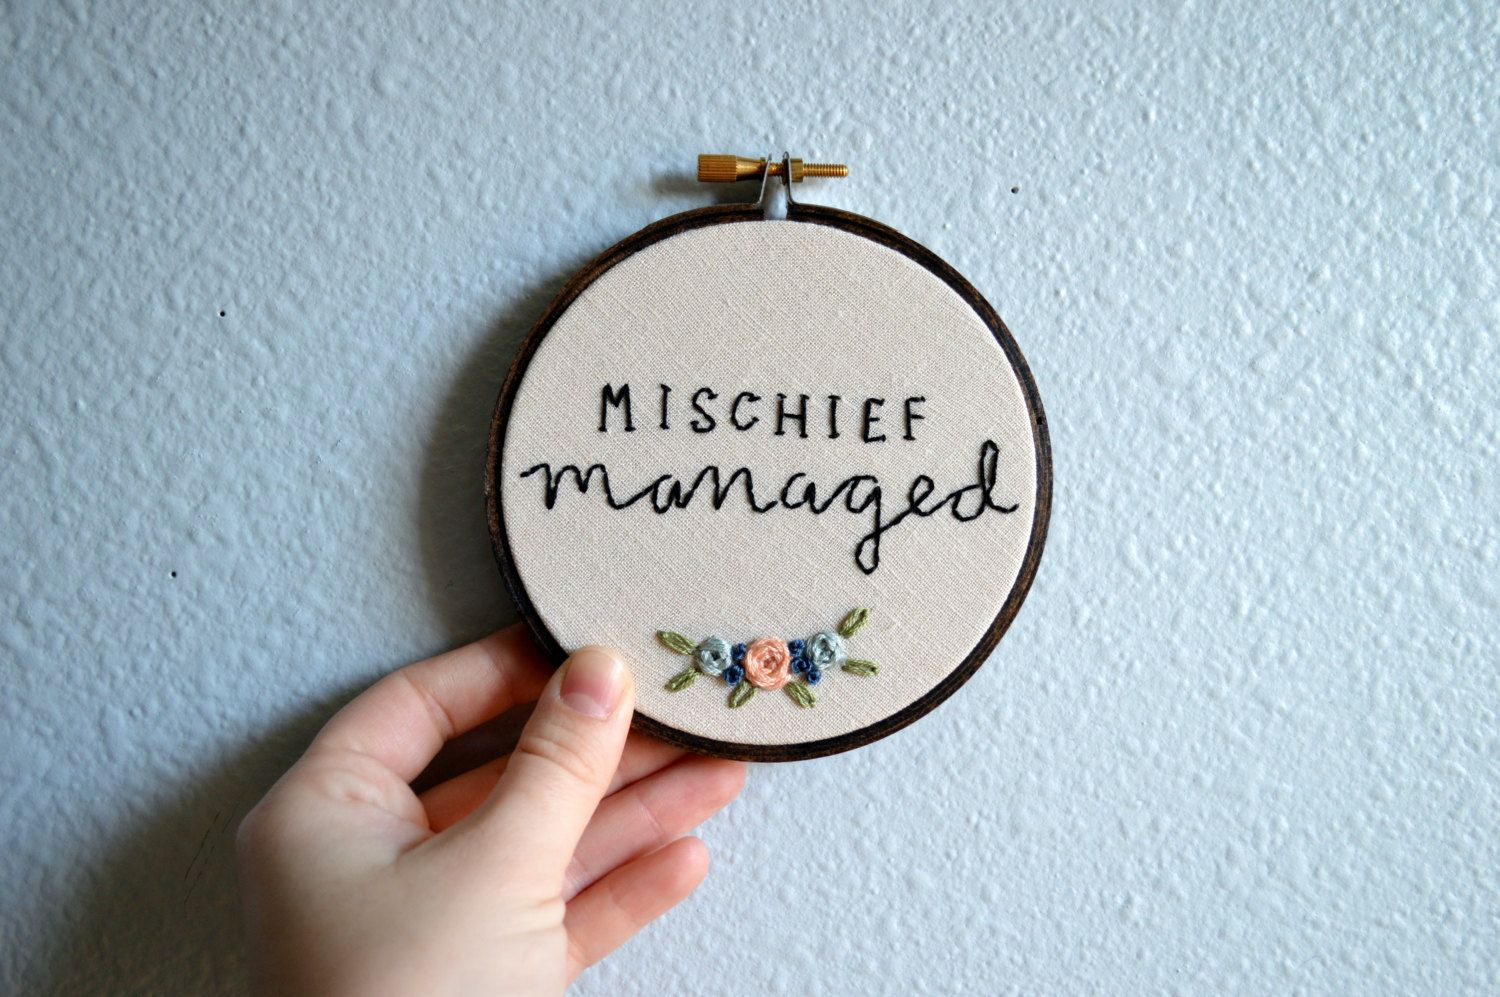 Mischief managed harry potter quote embroidery hoop art